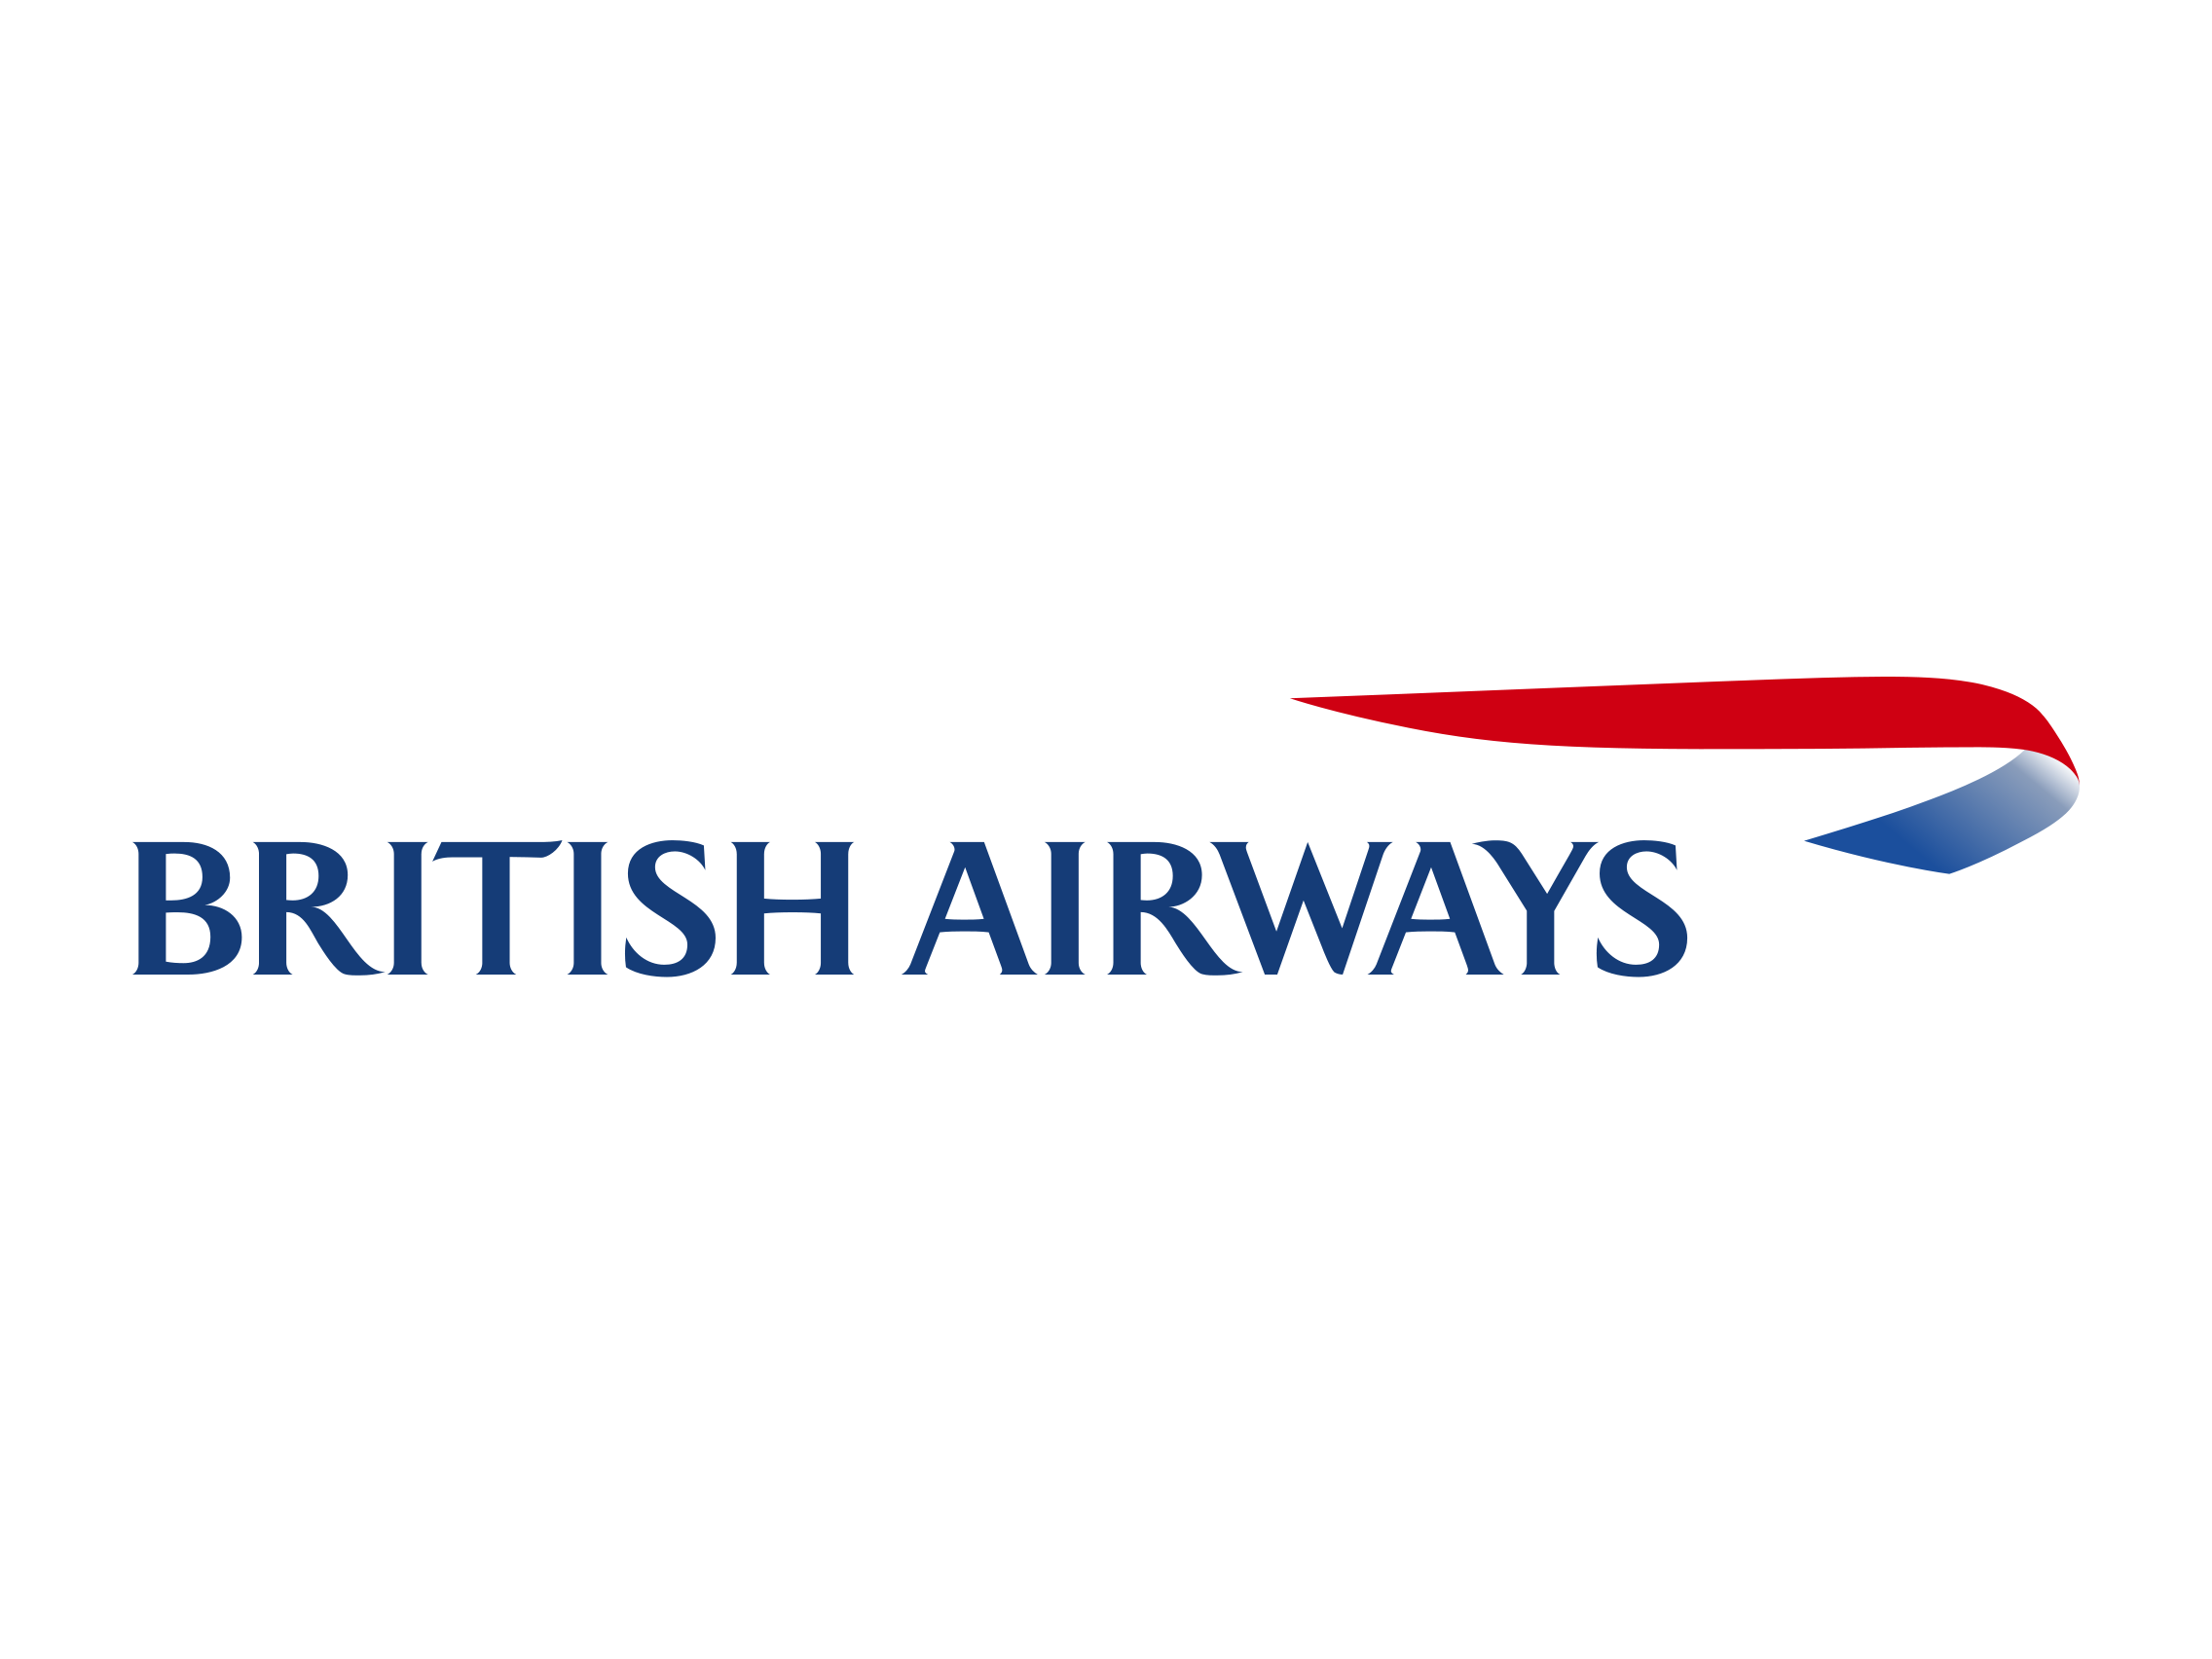 British Airways costa rica